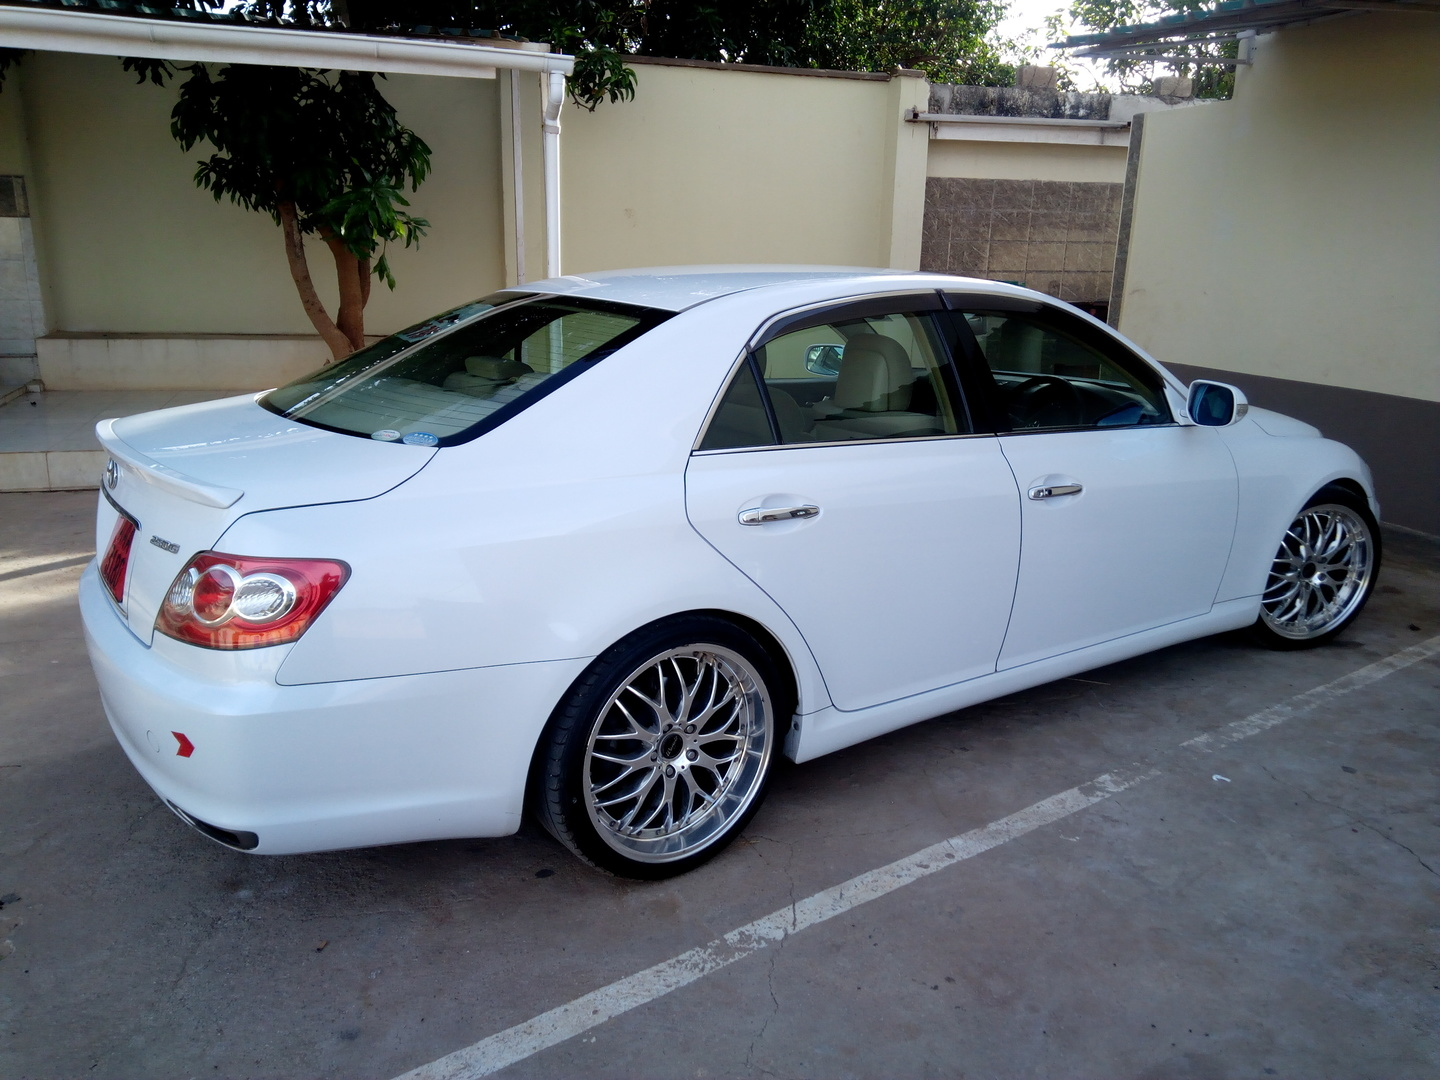 Best Price Used TOYOTA MARK X for Sale - Japanese Used Cars